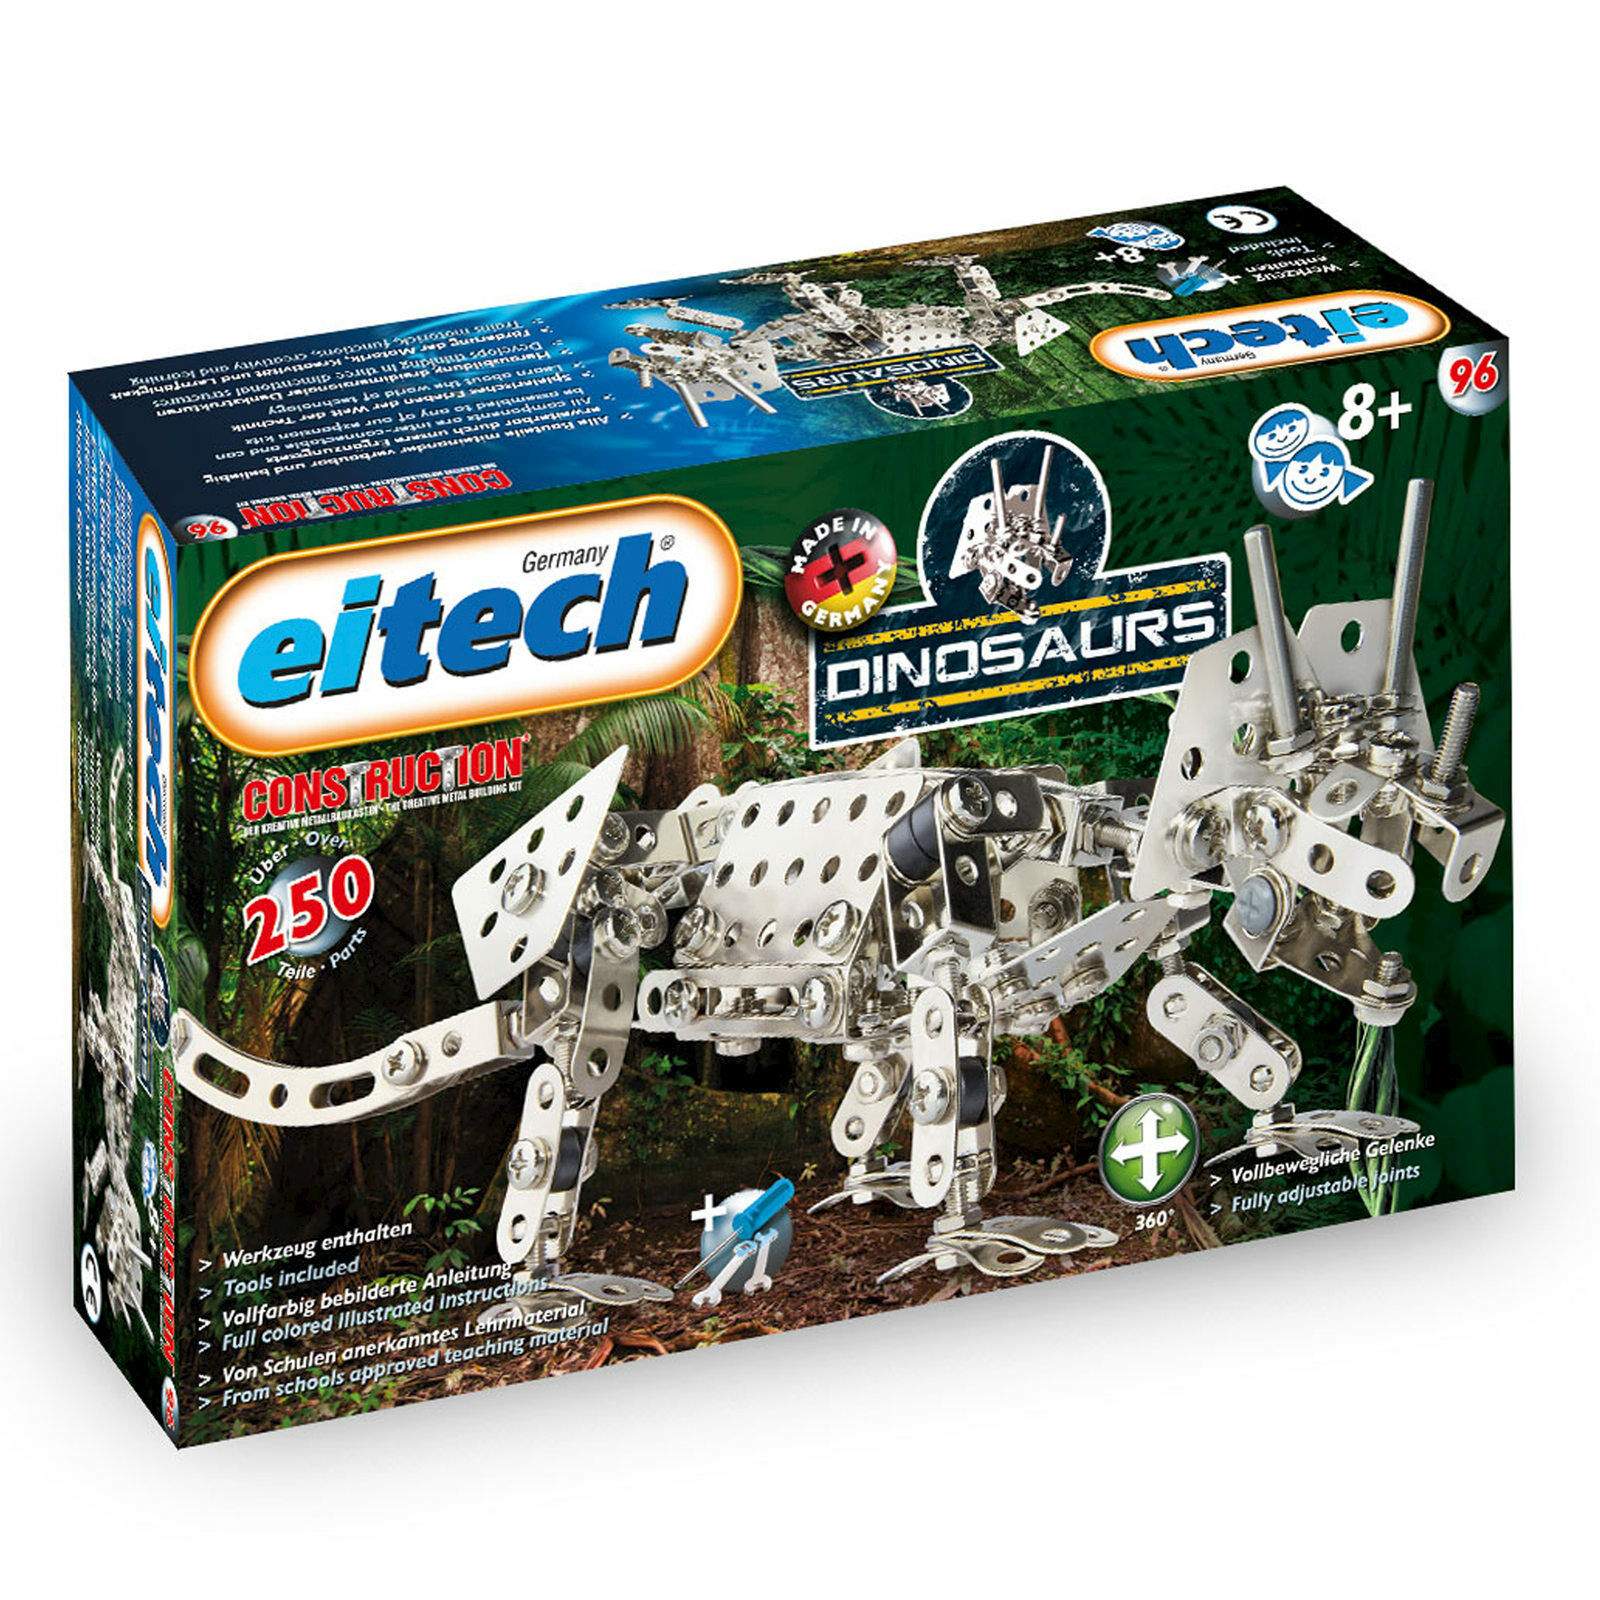 Eitech Metal Construction Sets Triceratops Dinosaurs